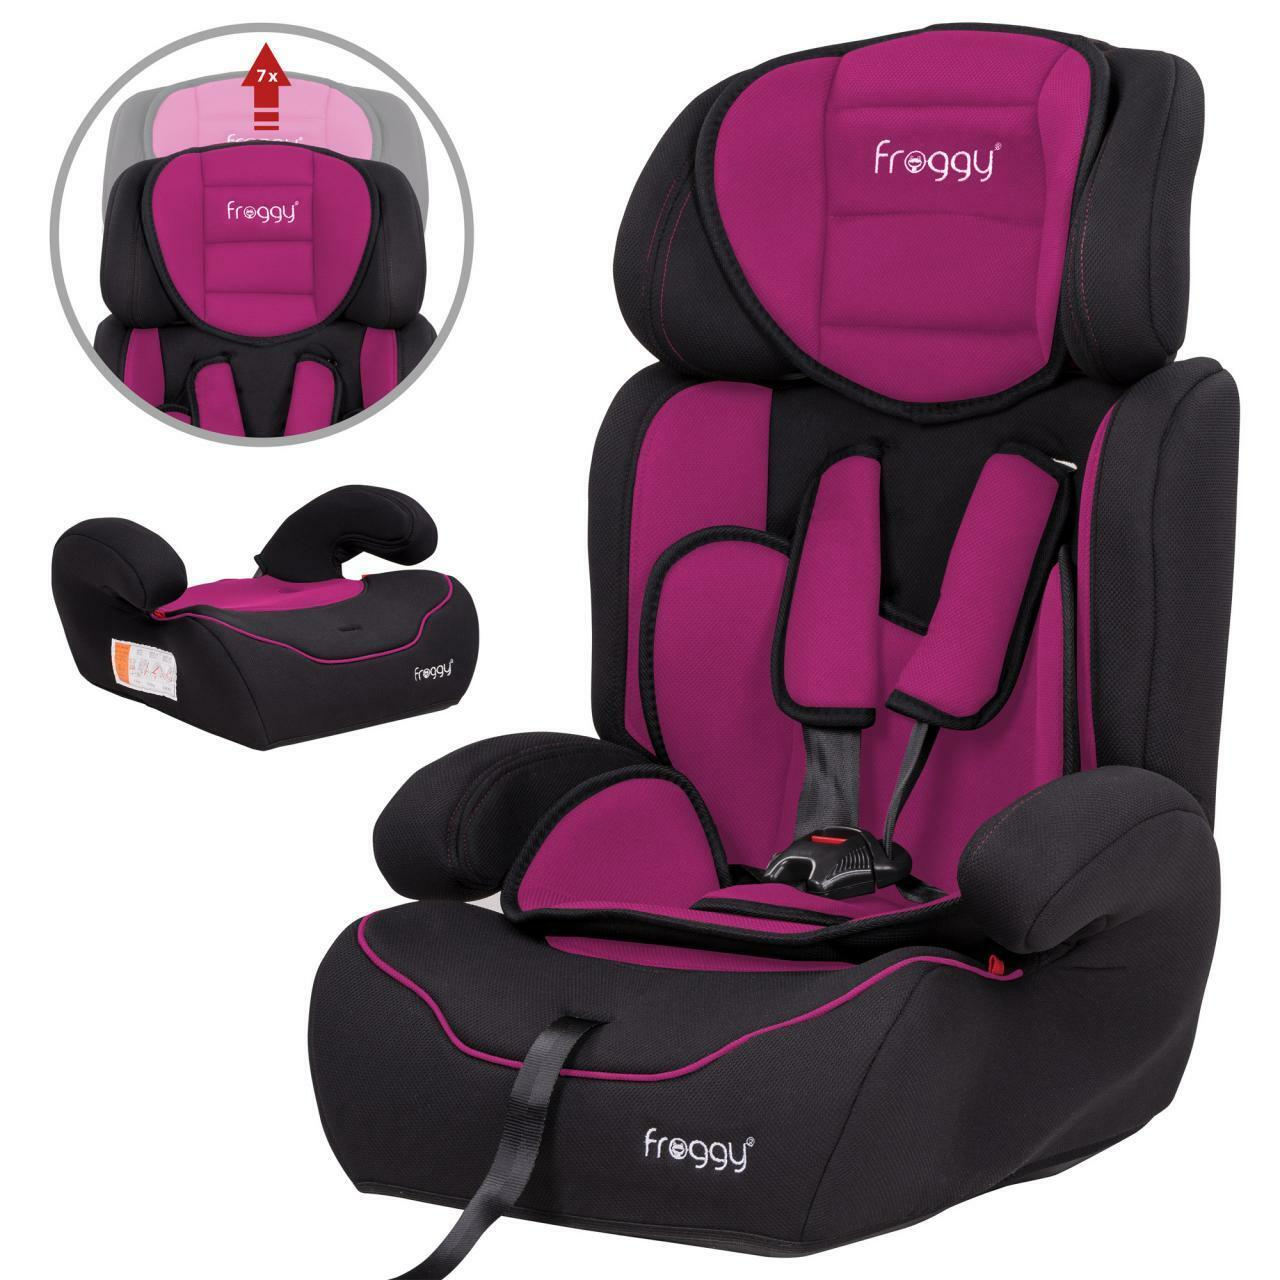 autokindersitz autositz autokindersitze kinderautositz 9 36 kg gruppe 1 2 3 pink eur 42 95. Black Bedroom Furniture Sets. Home Design Ideas